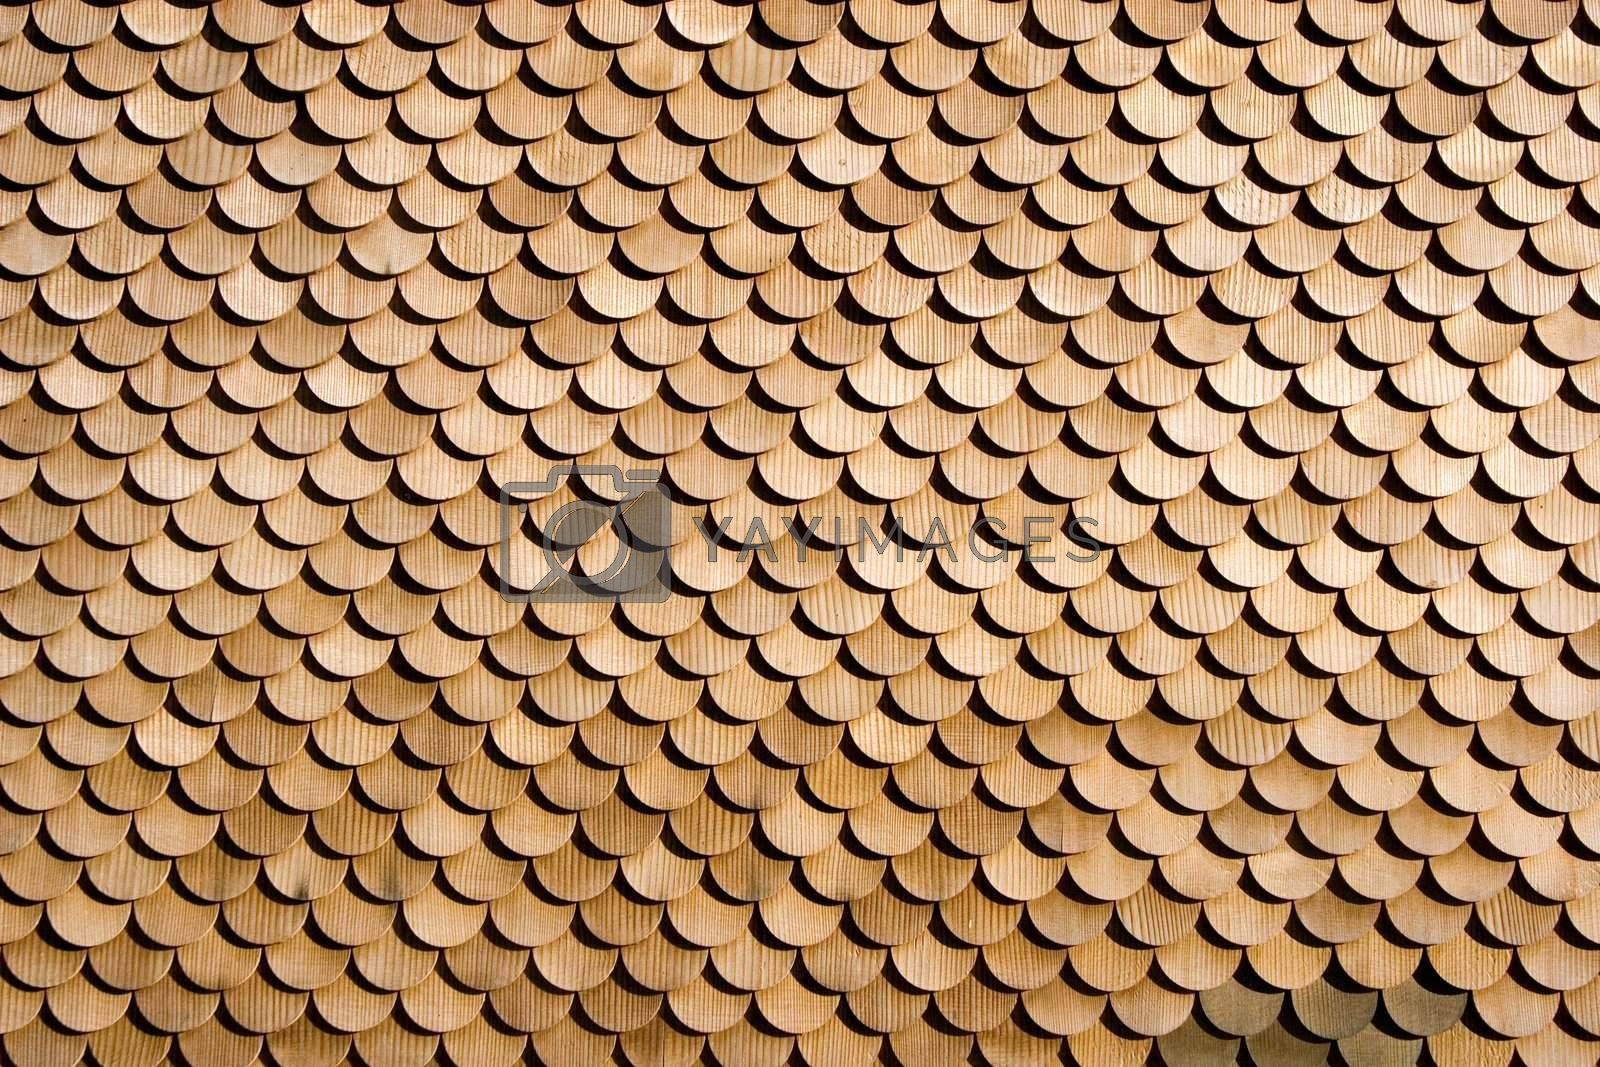 Wood pattern used to cover exterior walls on houses.